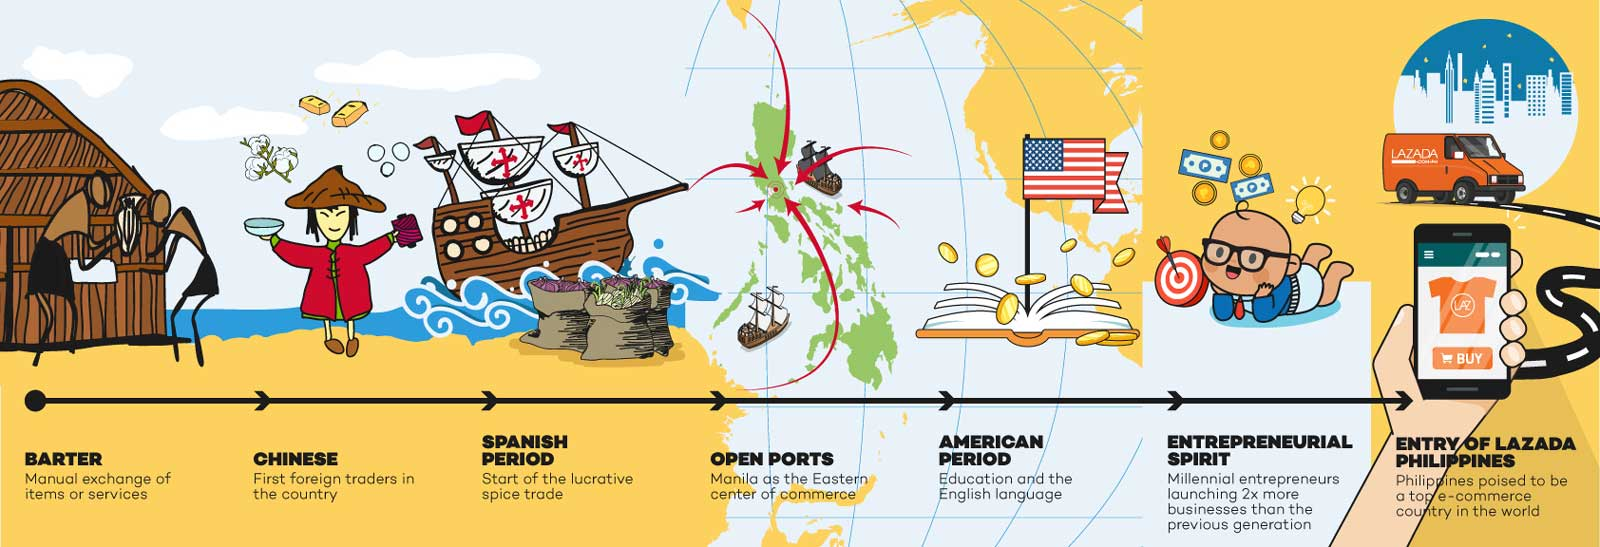 Philippine Commerce Through the Years